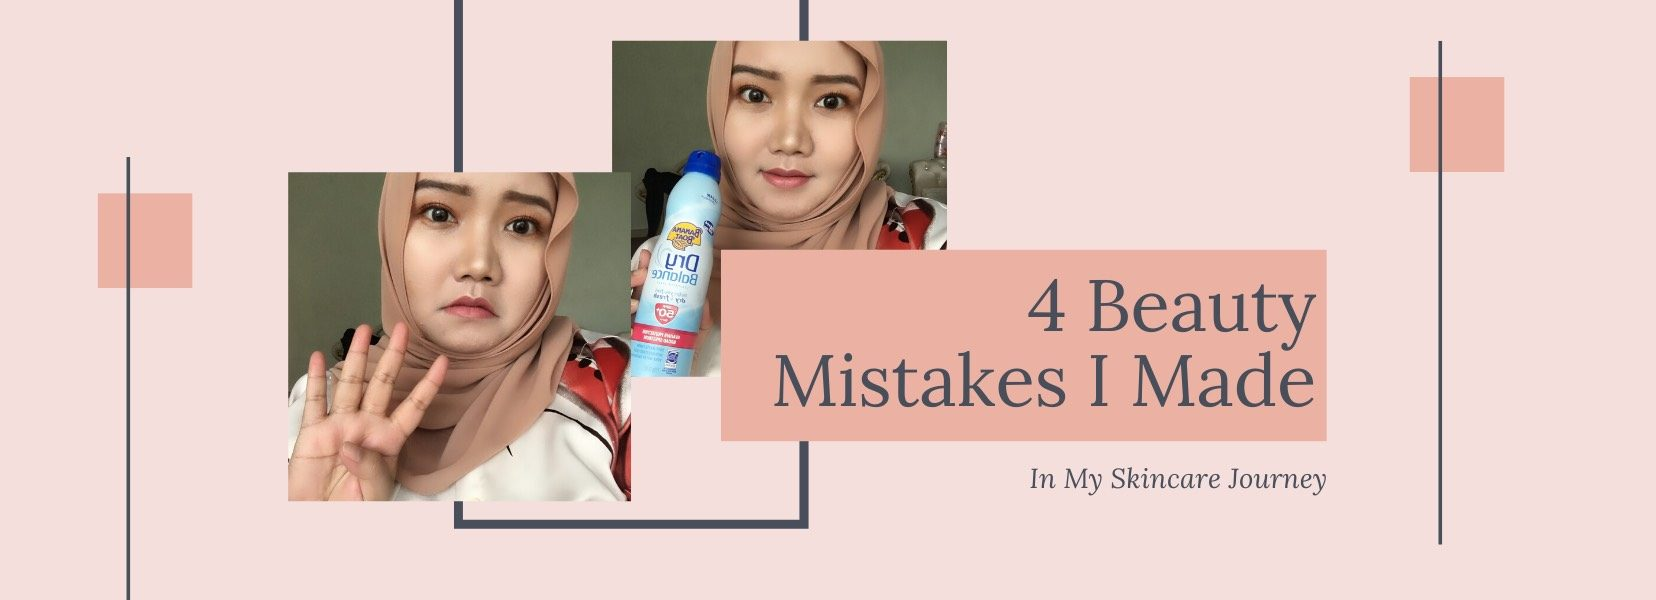 4 Beauty Mistakes I Made in My Skincare Journey